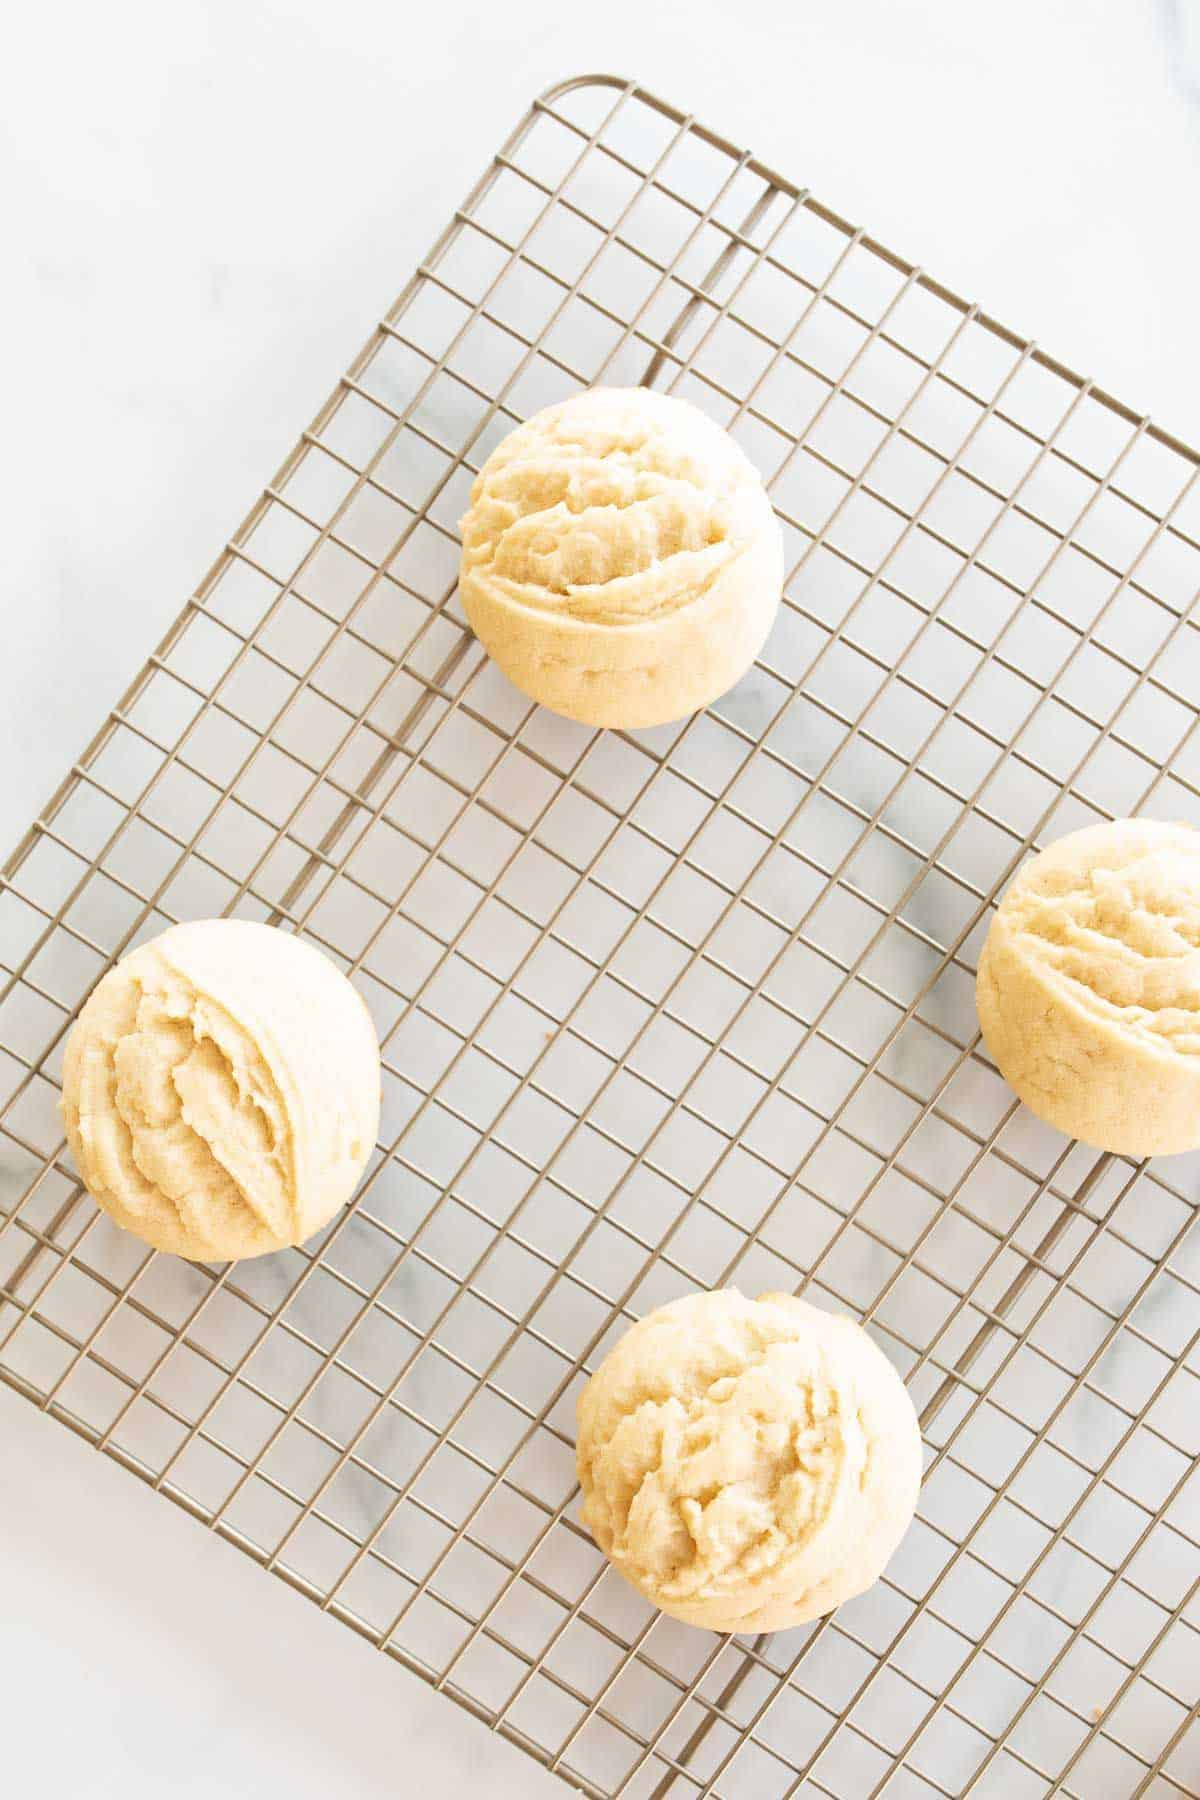 Amish sugar cookies on a wire cooling rack.